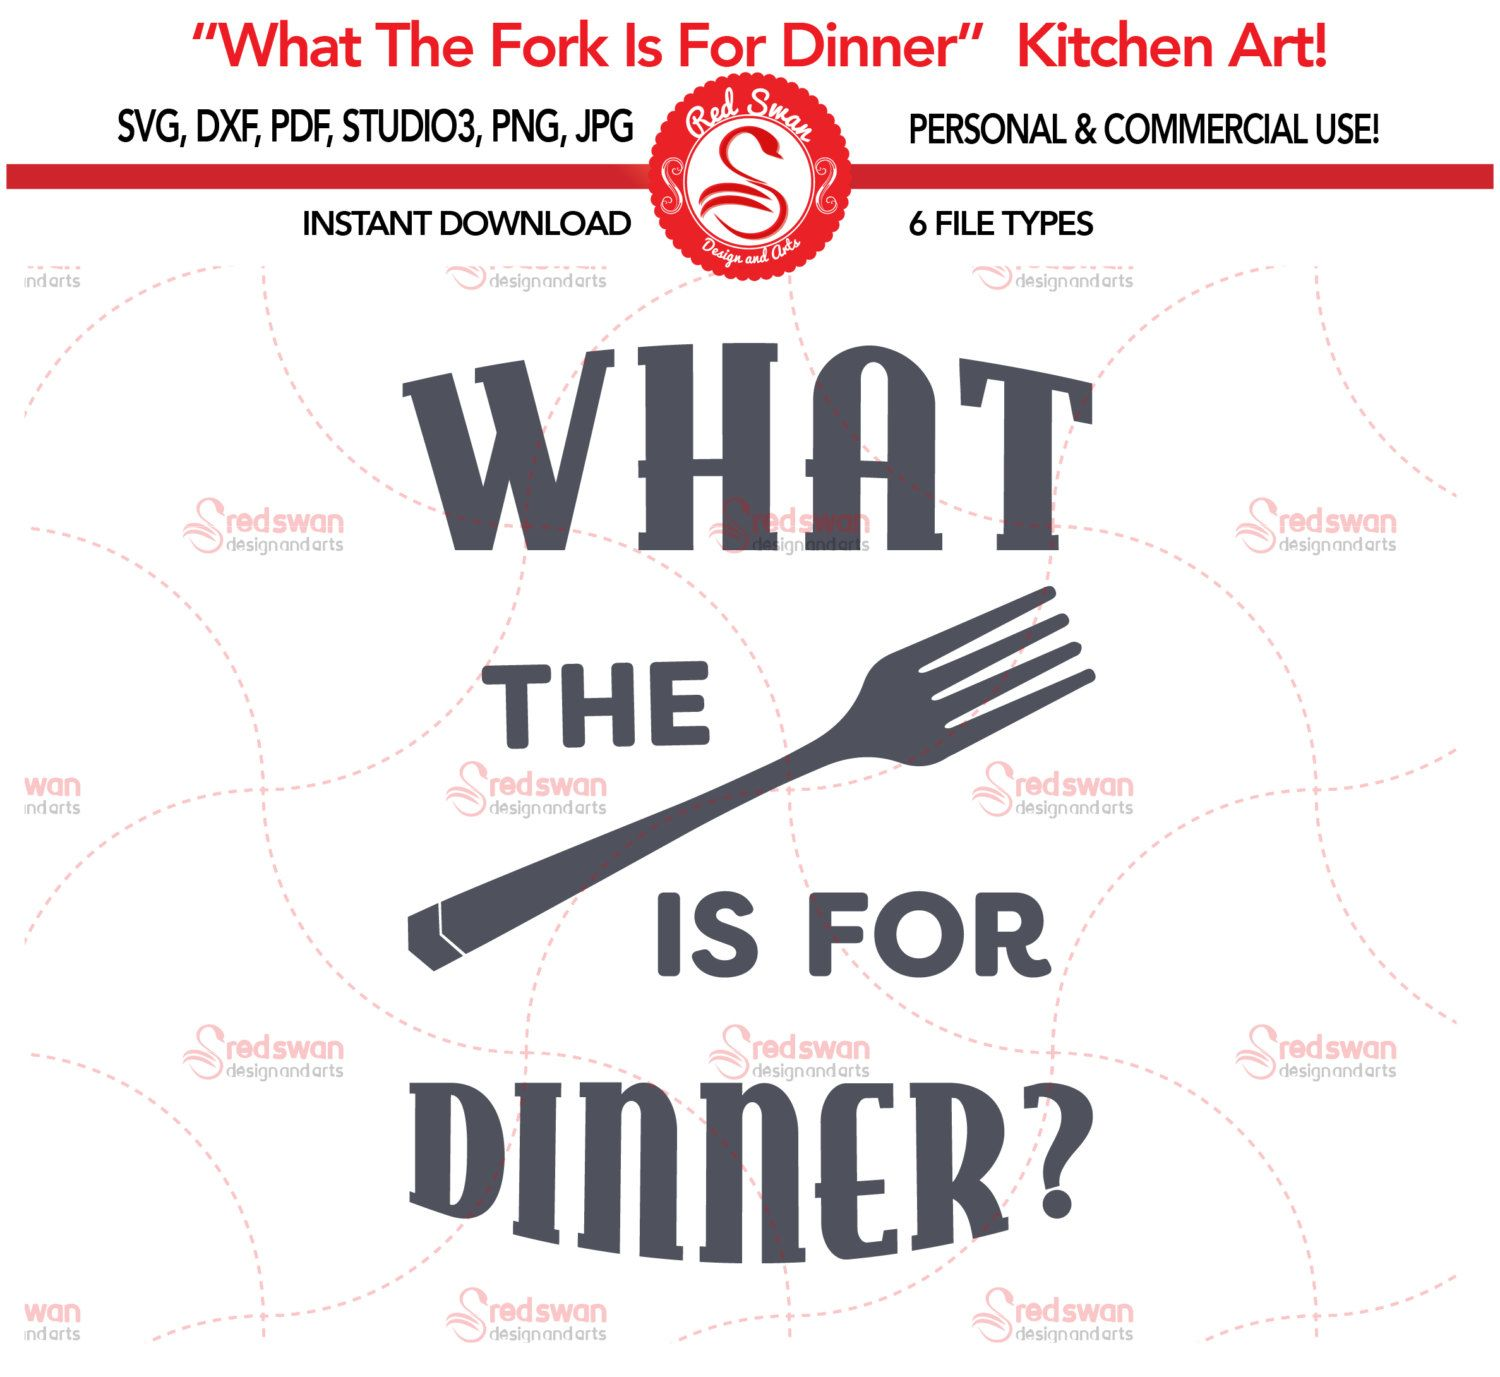 Kitchen Svg What The Fork Is For Dinner Cutting File, Svg, Dxf, Pdf